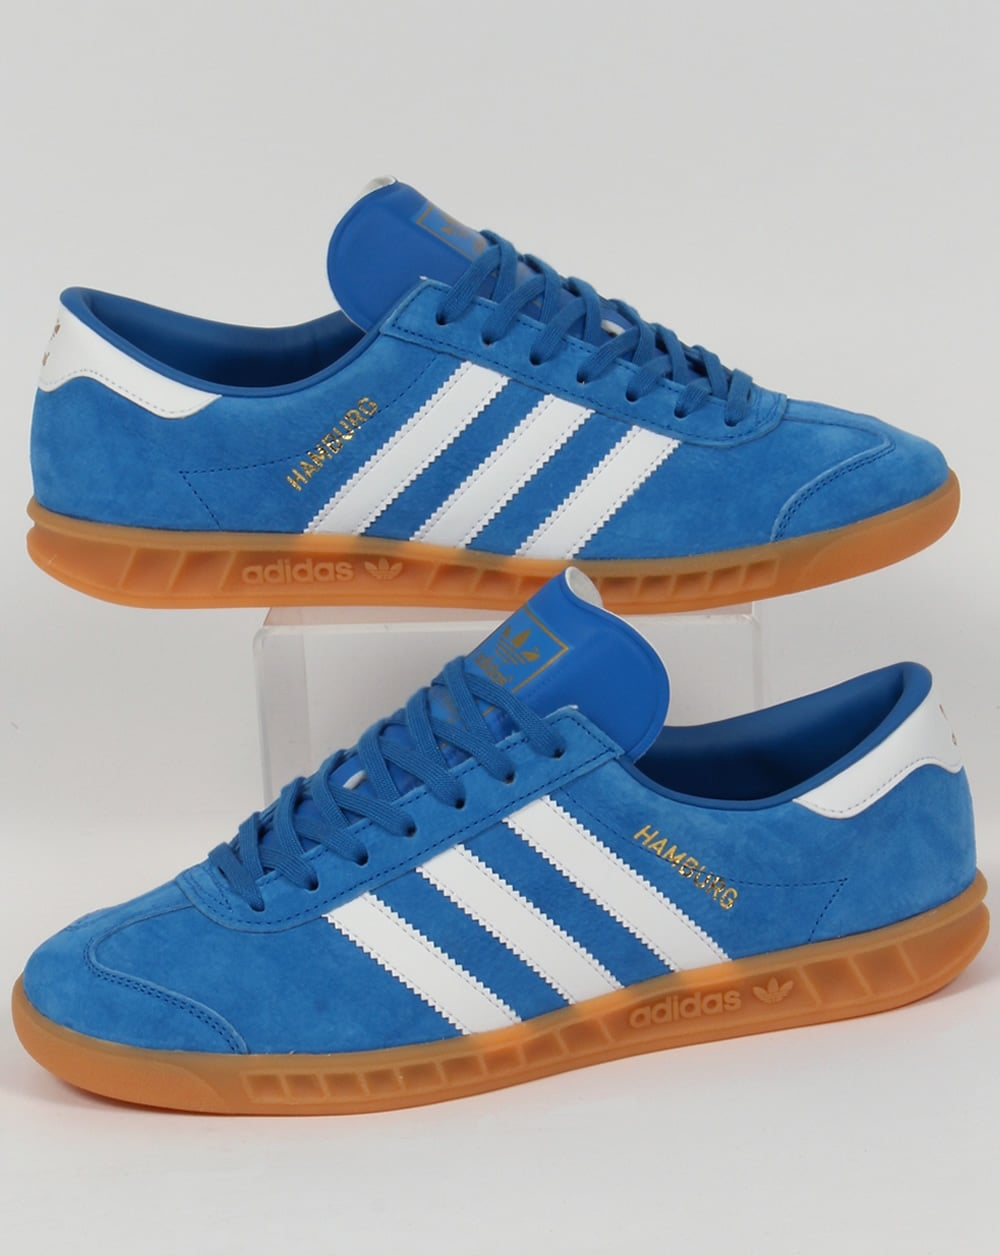 adidas Trainers Adidas Hamburg Trainers Bluebird Blue White ef15aa70601c